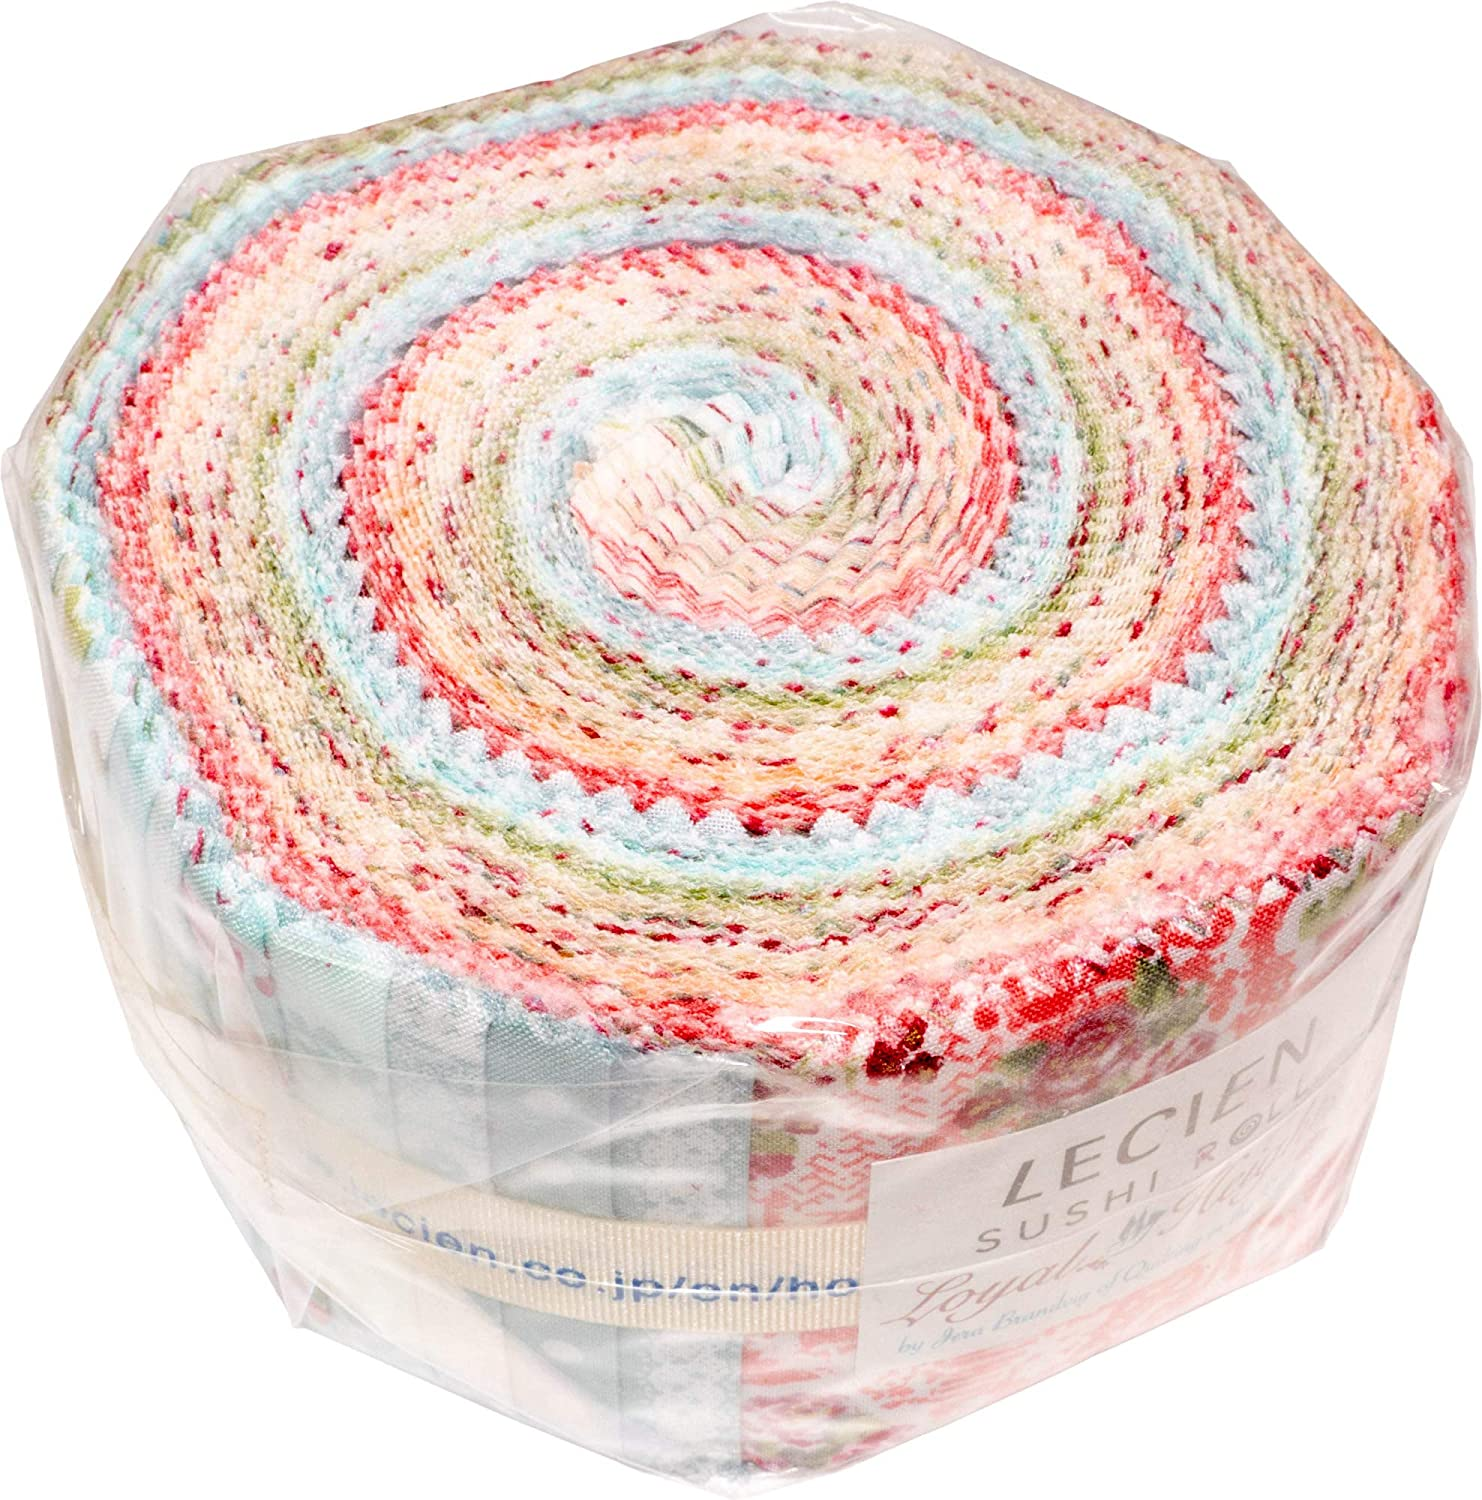 Jera Brandvig Loyal Heights Sushi Roll 42 2.5-inch Strips Jelly Roll Lecien